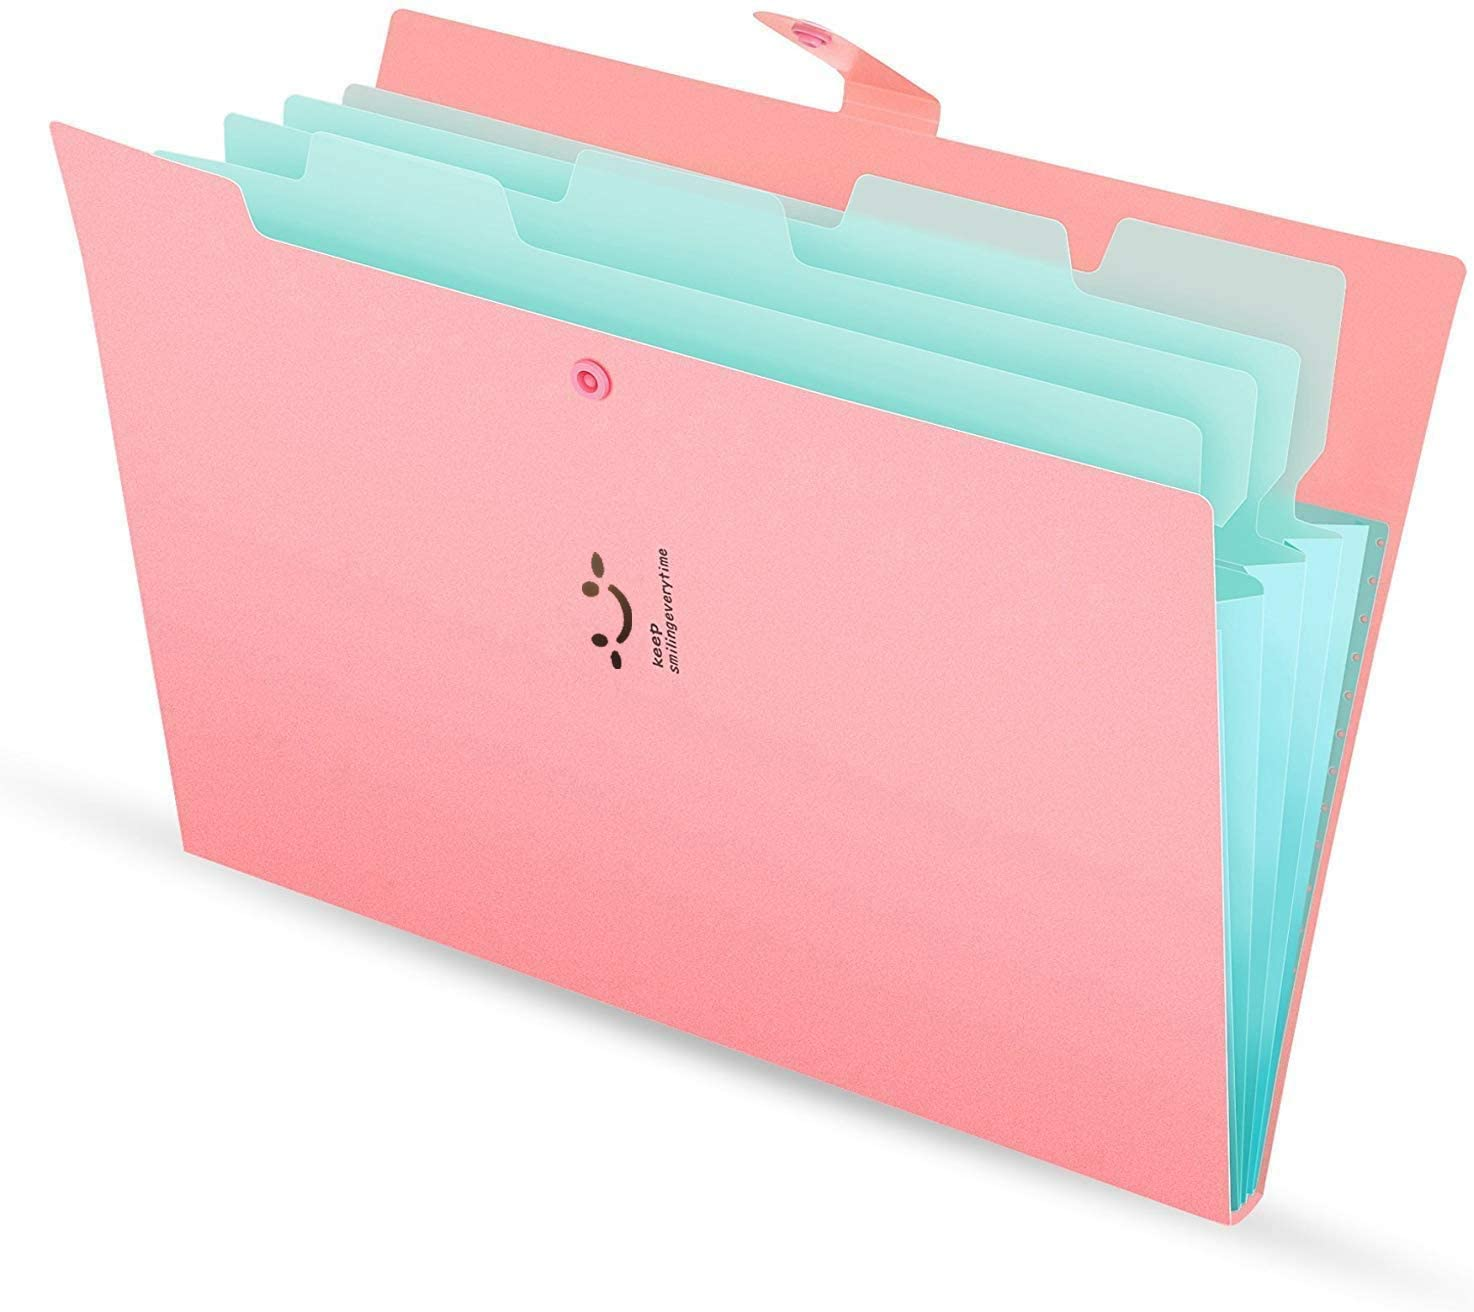 ZALALAS Letter A4 Paper Expanding File Folder Pockets Accordion Document Organizer for School Office Home(Pink)